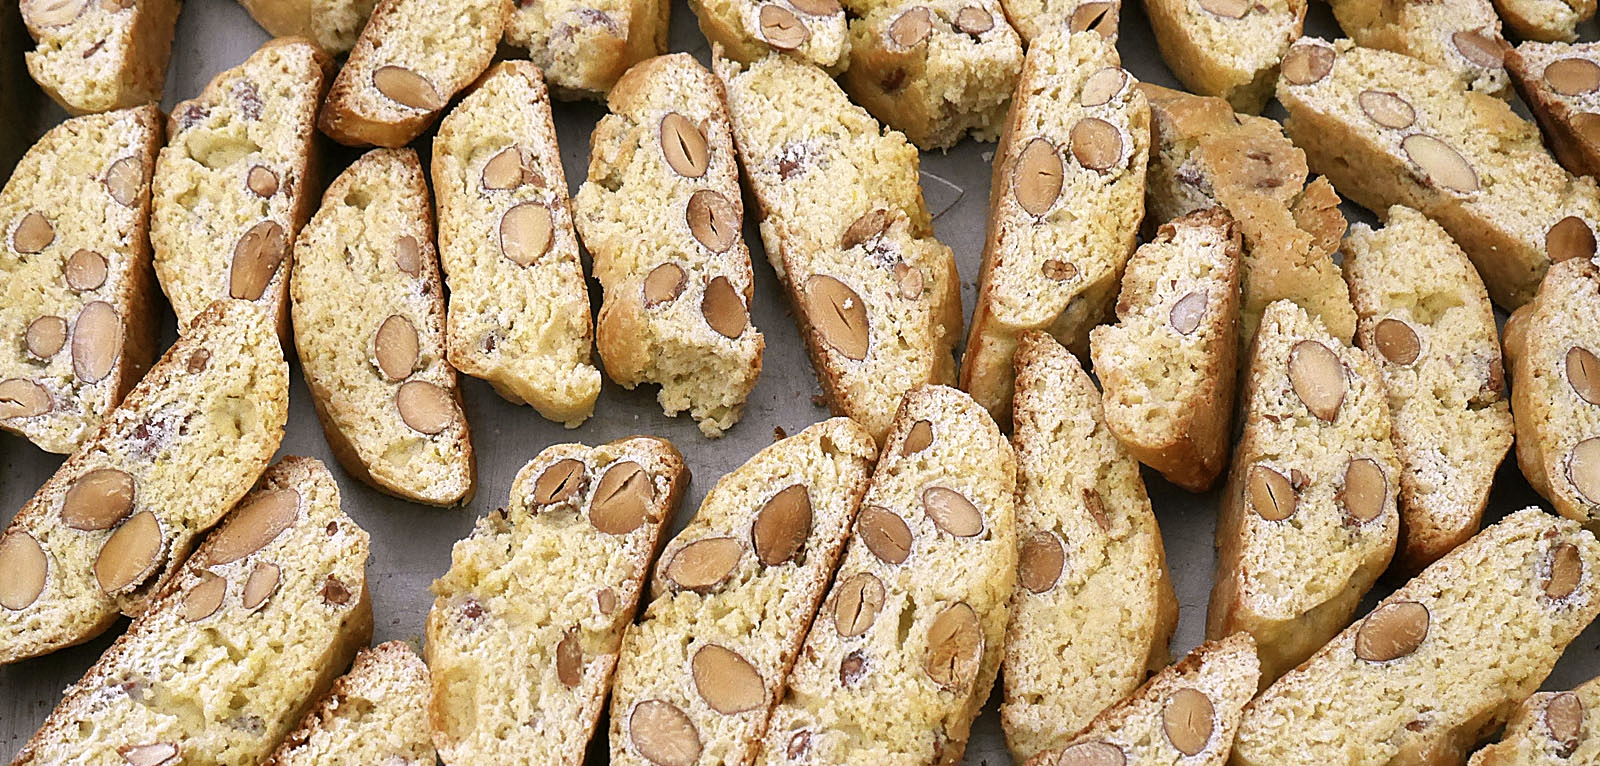 TUSCAN ALMOND COOKIES - CANTUCCI